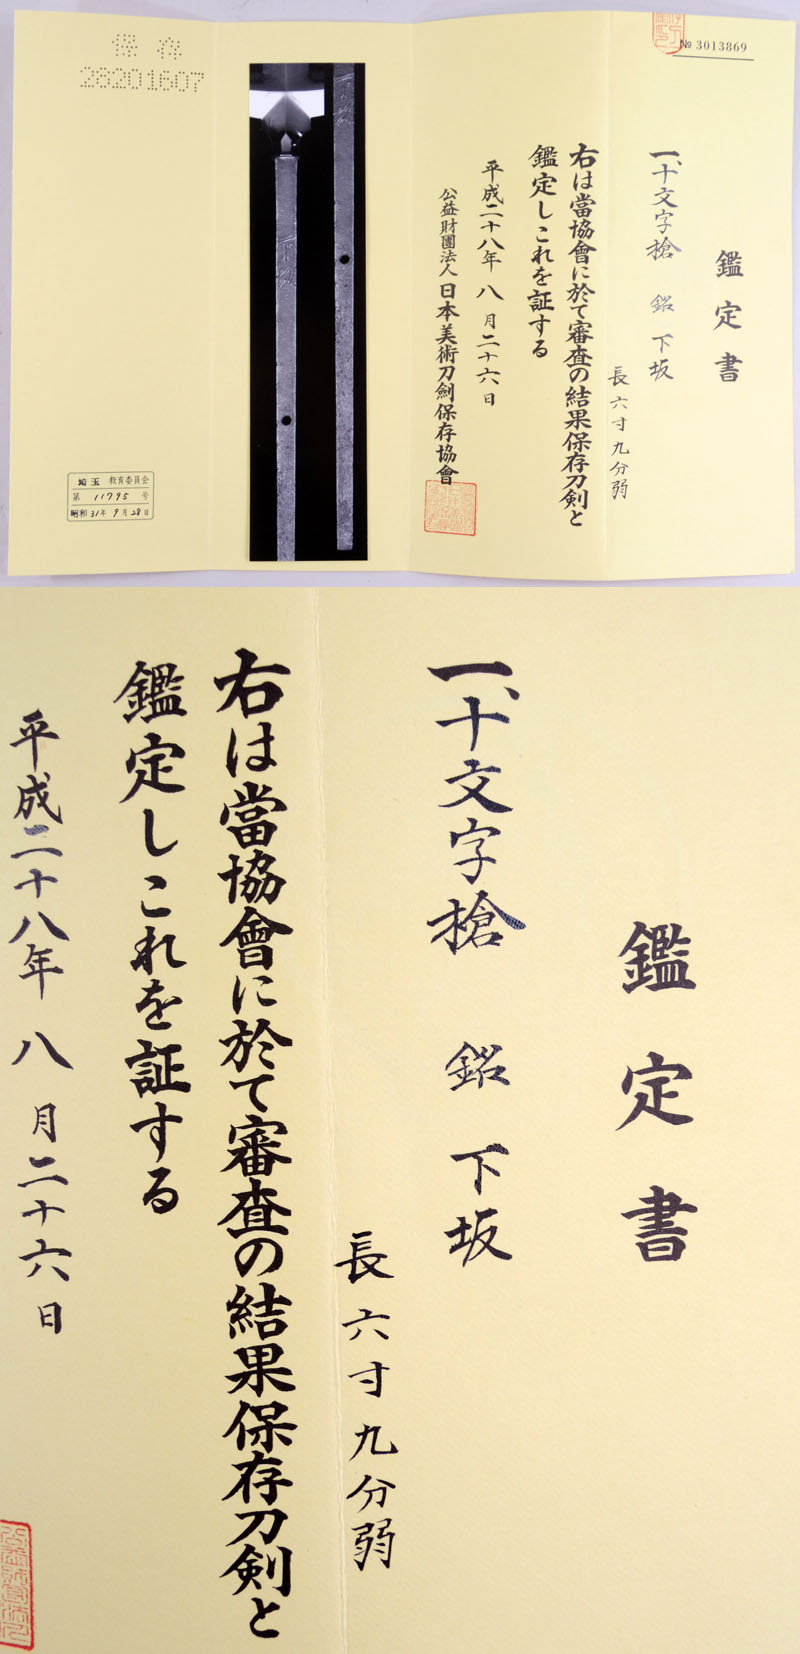 十文字槍 下坂 Picture of Certificate